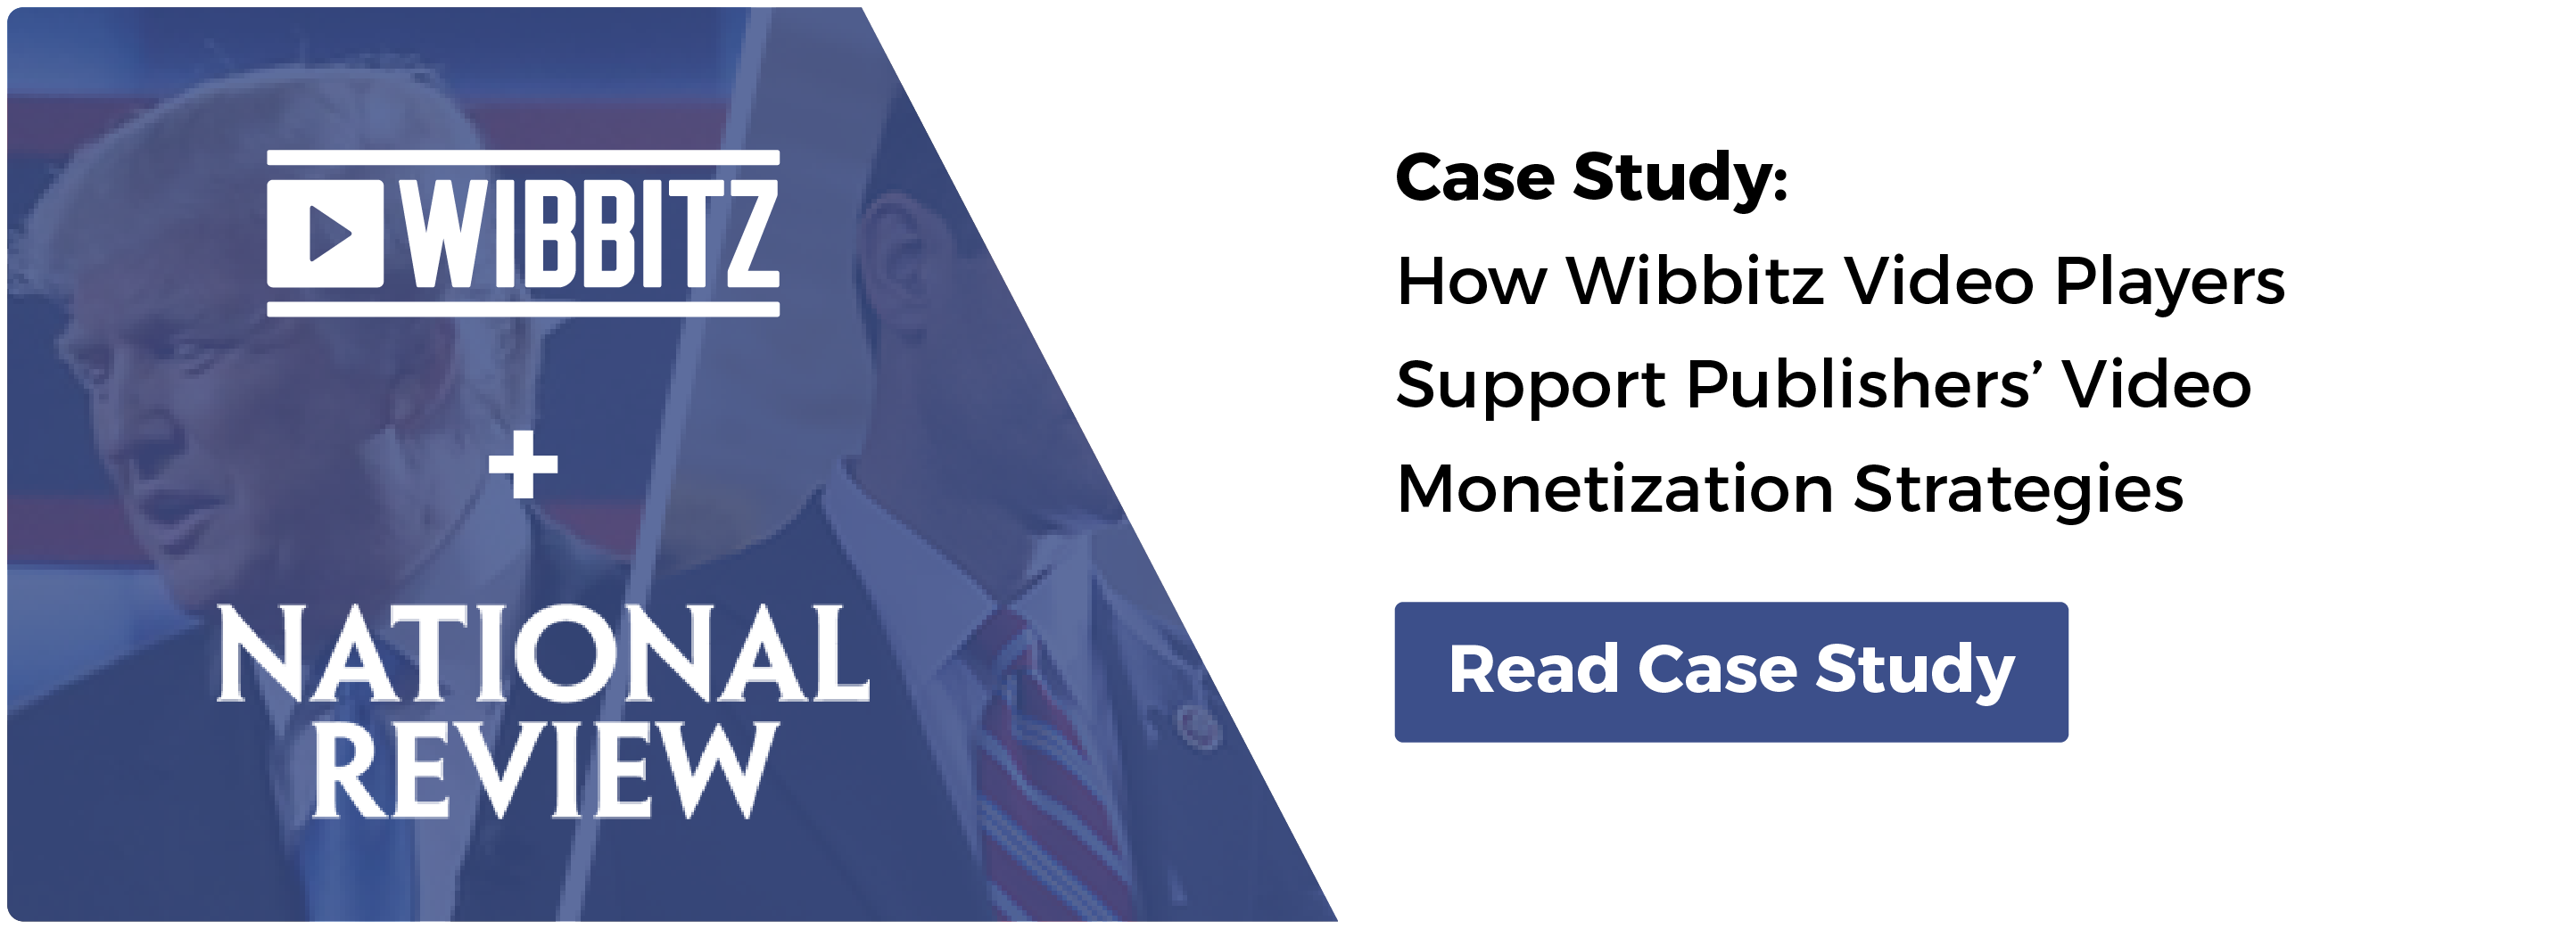 NATIONAL REVIEW CASE STUDY: How Wibbitz Video Players Support Publishers' Video Monetization Strategies